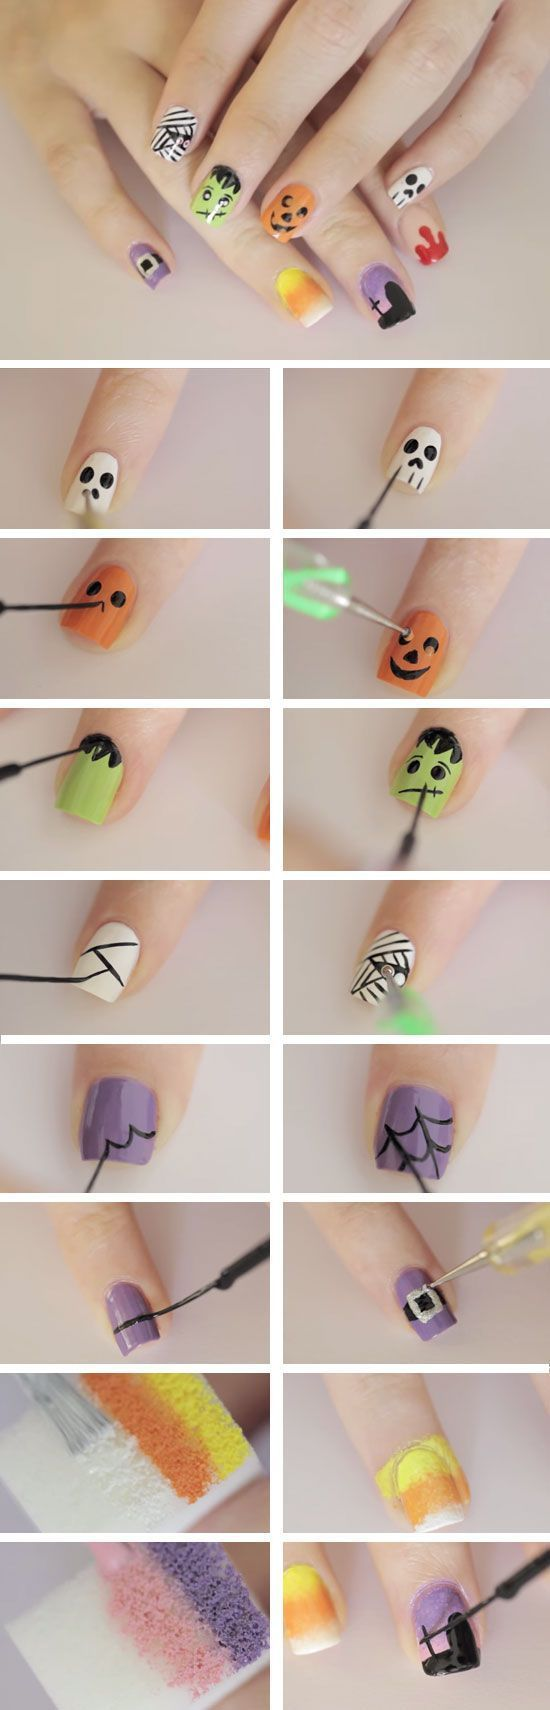 ¡Nail Art para Halloween! #VoranaNails #Uñas #Tutorial